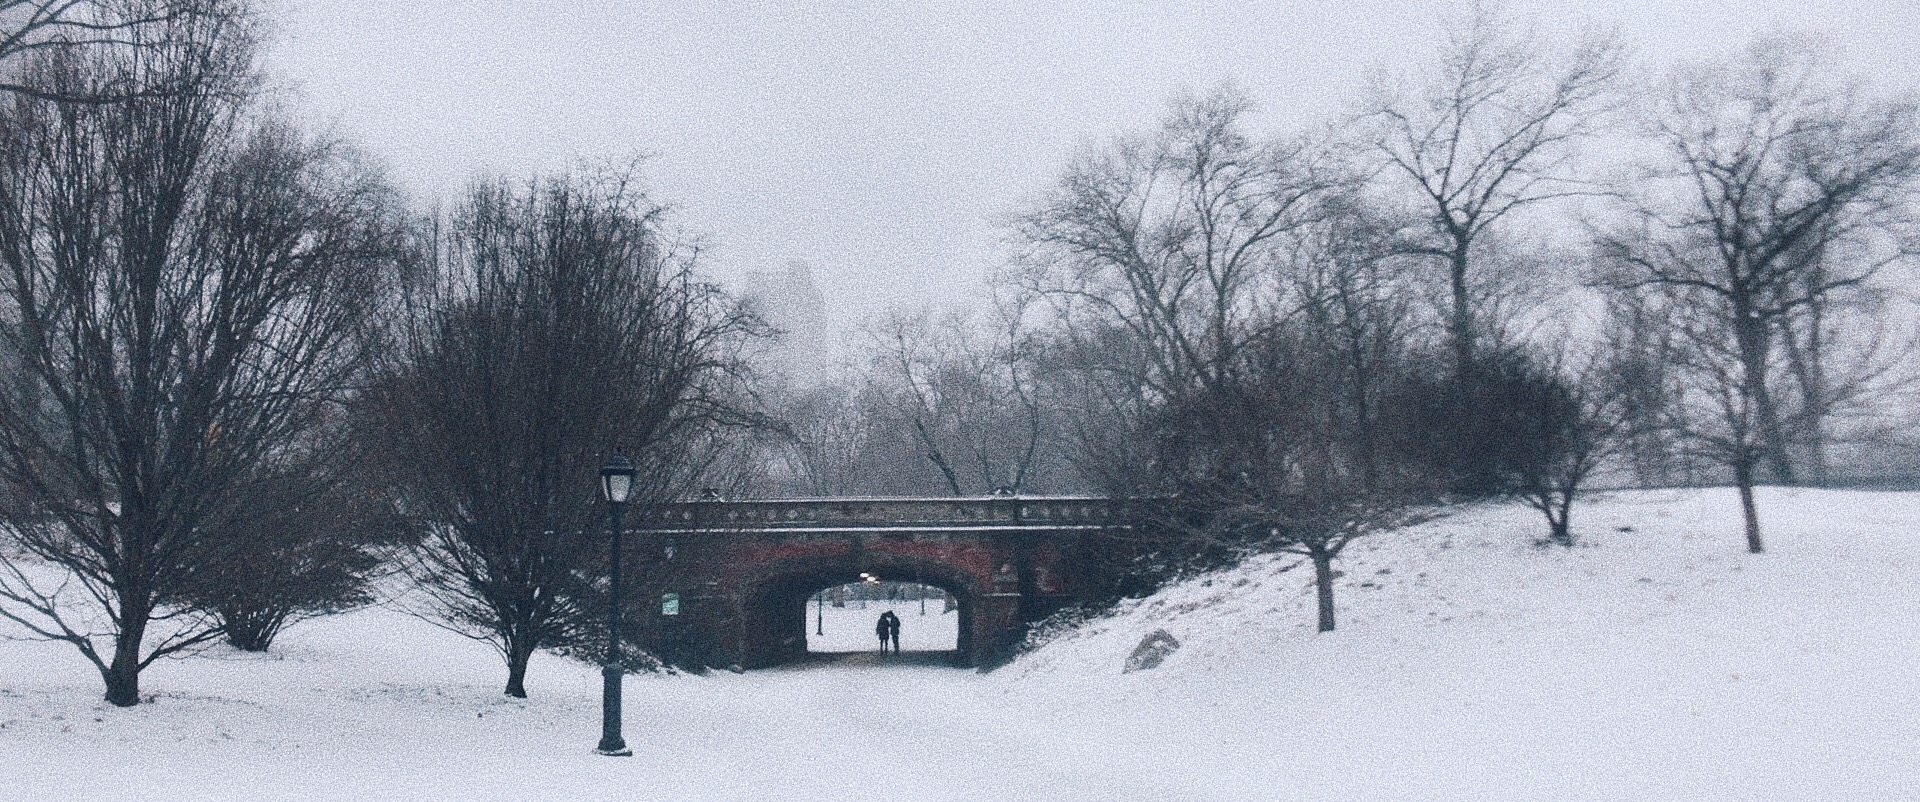 Two lovers holding hands, walking under a bridge in central park.